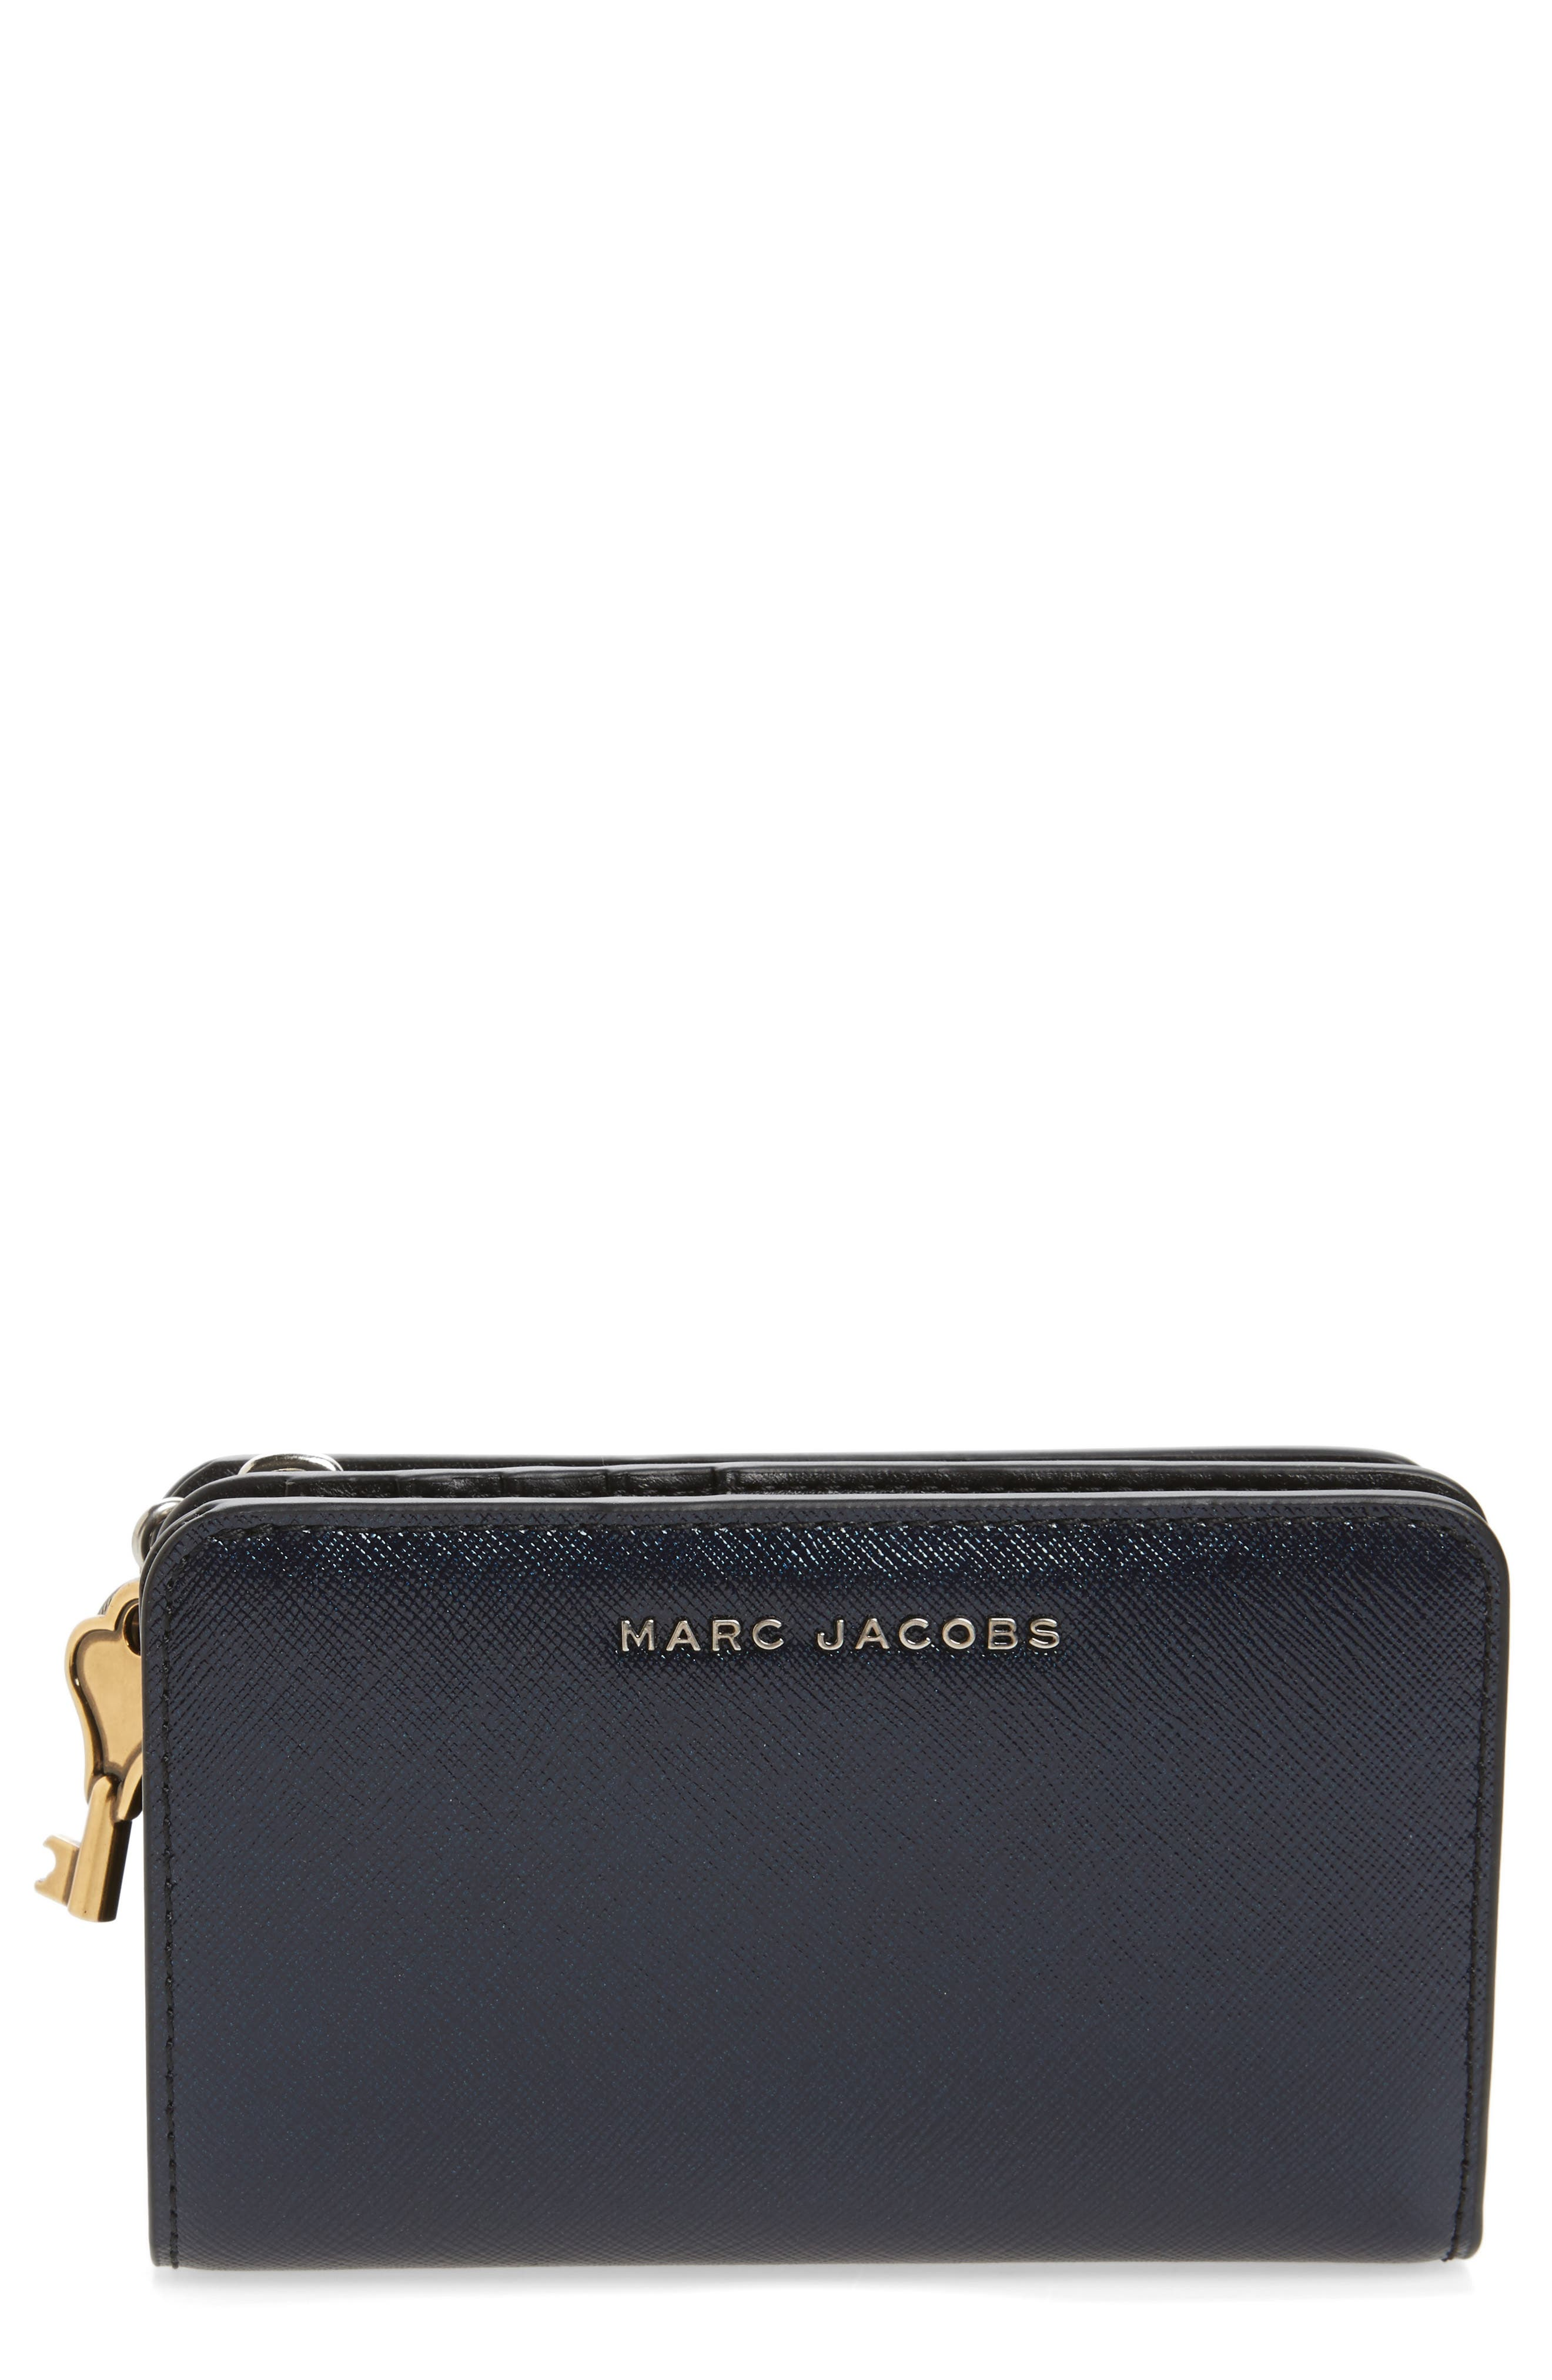 MARC JACOBS Saffiano Leather Compact Wallet